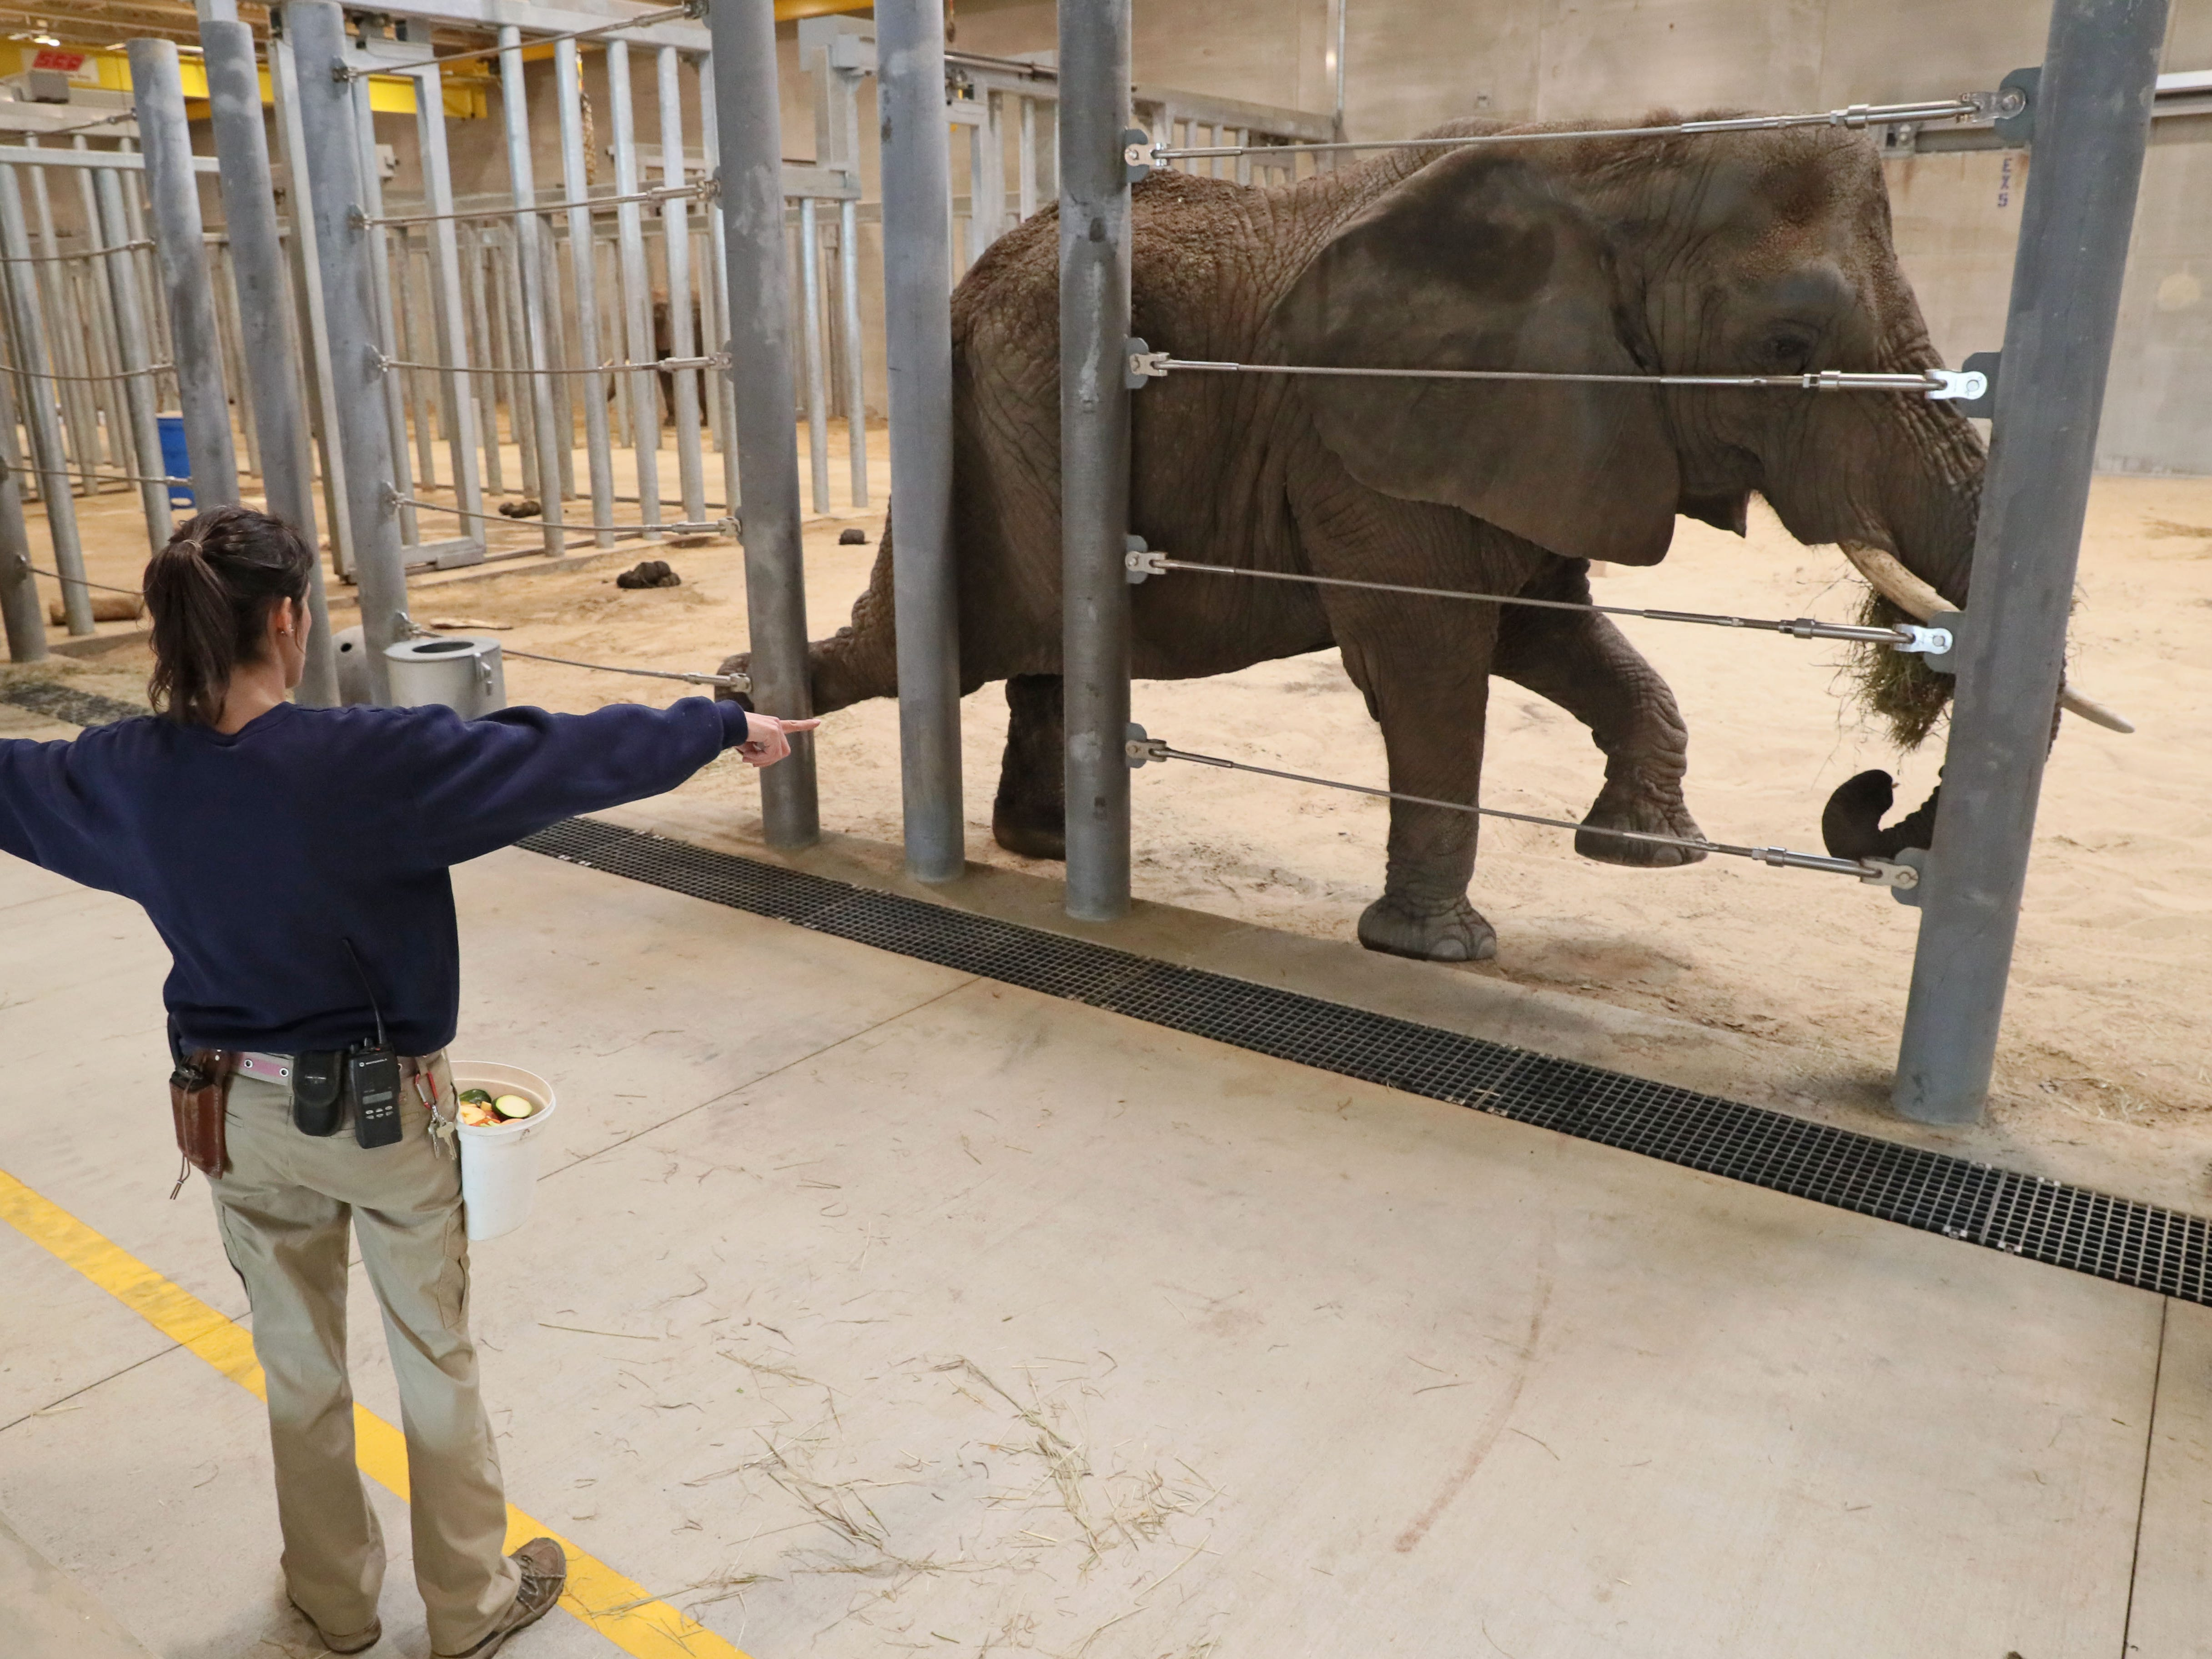 Elephant care coordinator Erin Dowgwillo puts Ruth through her exercises.